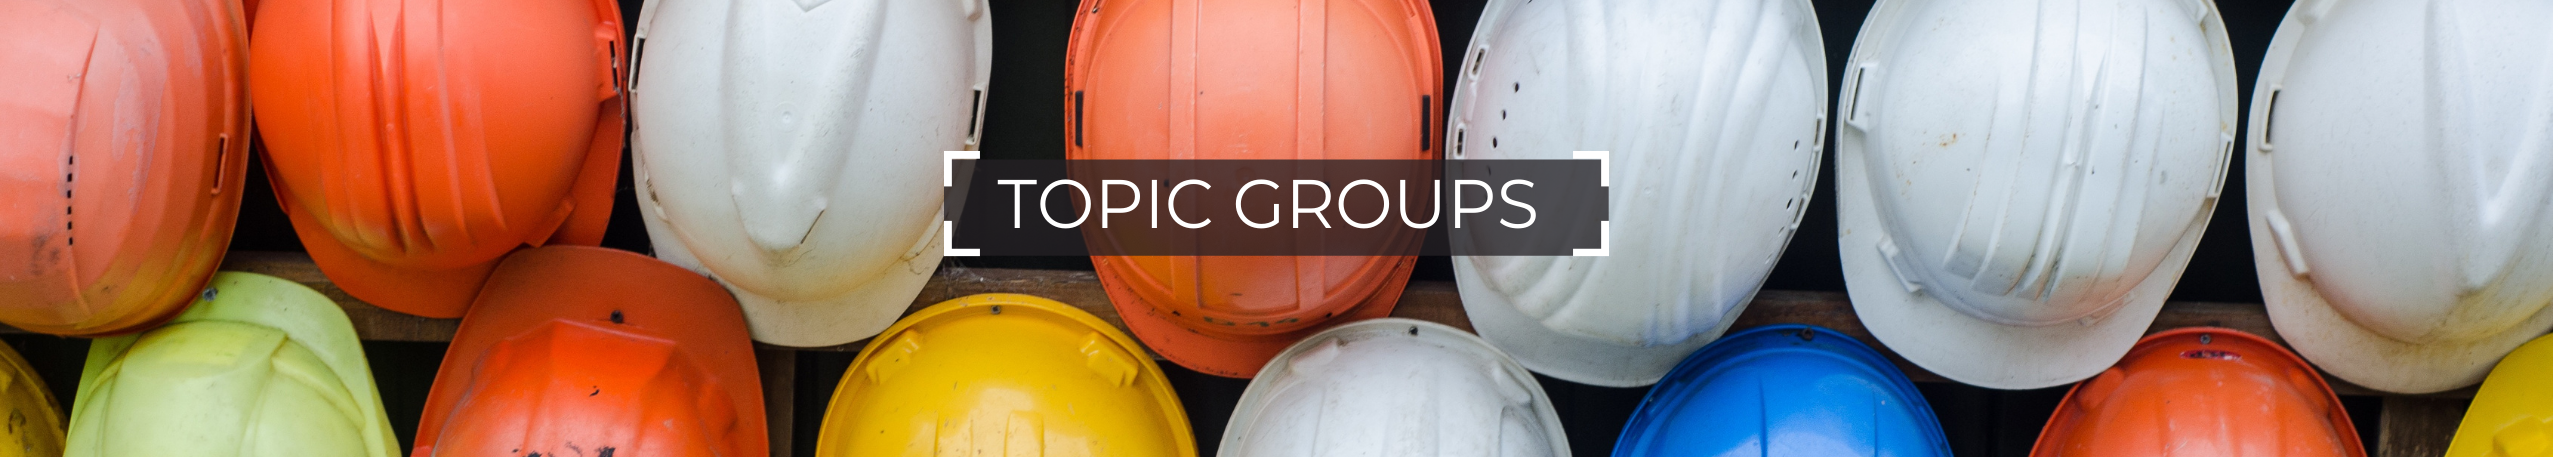 Topic groups